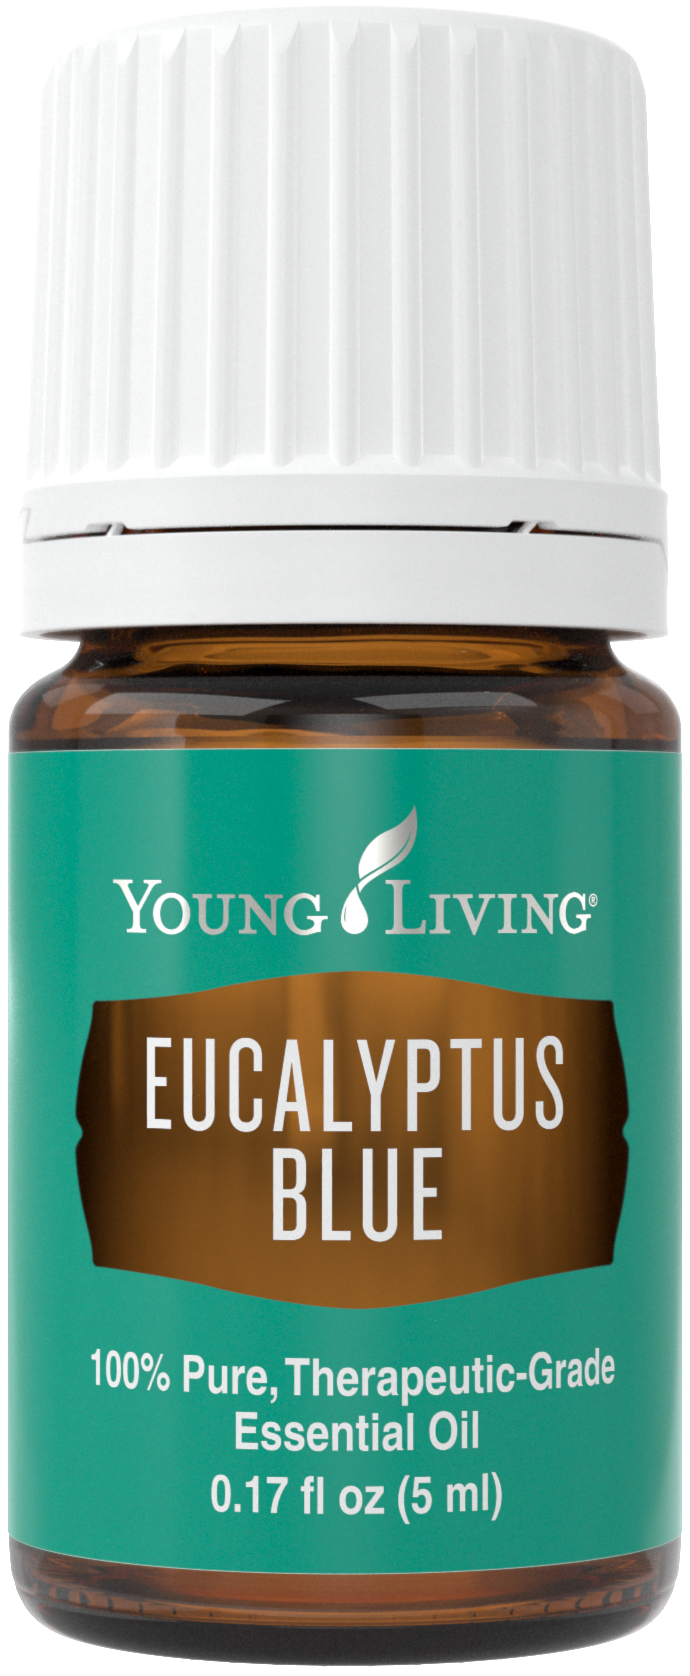 eucalyptusblue_5ml_silo_us_2016_24501132916_o